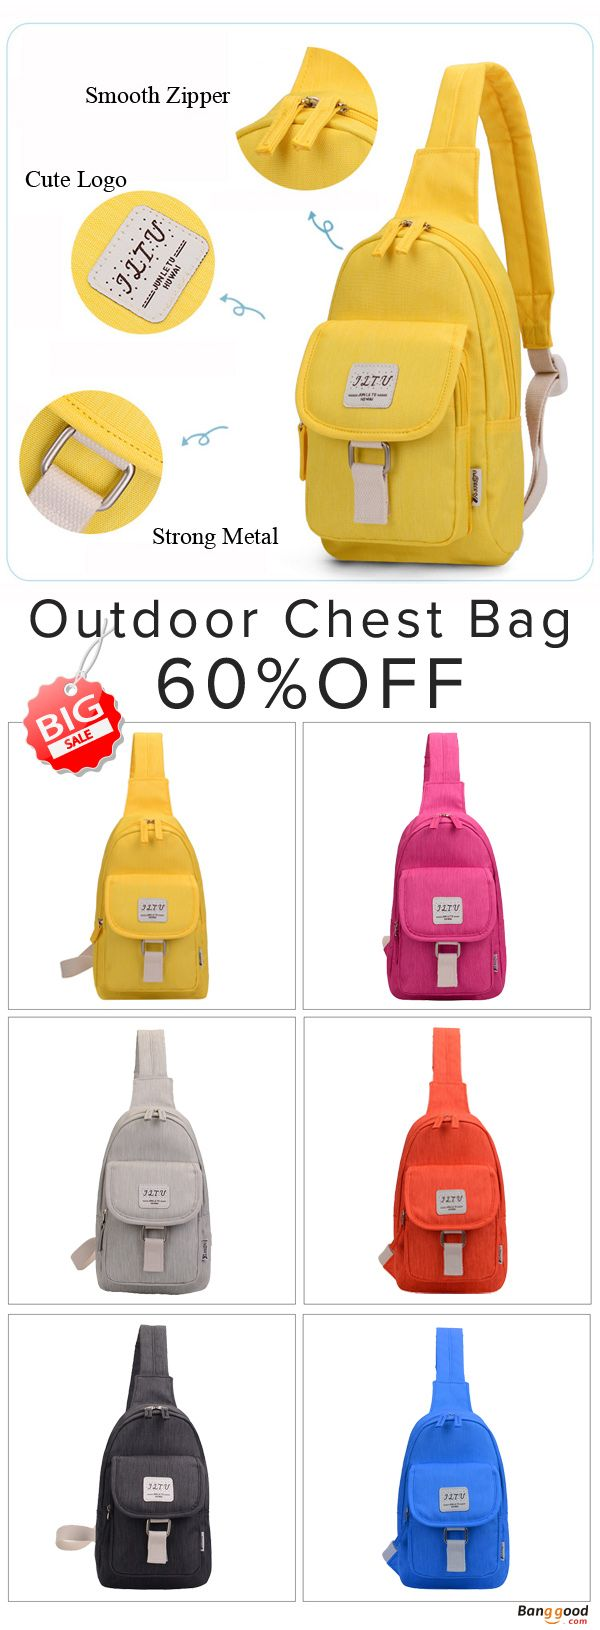 US$14.99+Free shipping. Chest Bag, Crossbody Bag, Quality, Canvas, Sport, Outdoor, Color: Yellow, Blue, Black, Orange, Gray, Rose. Shop now~